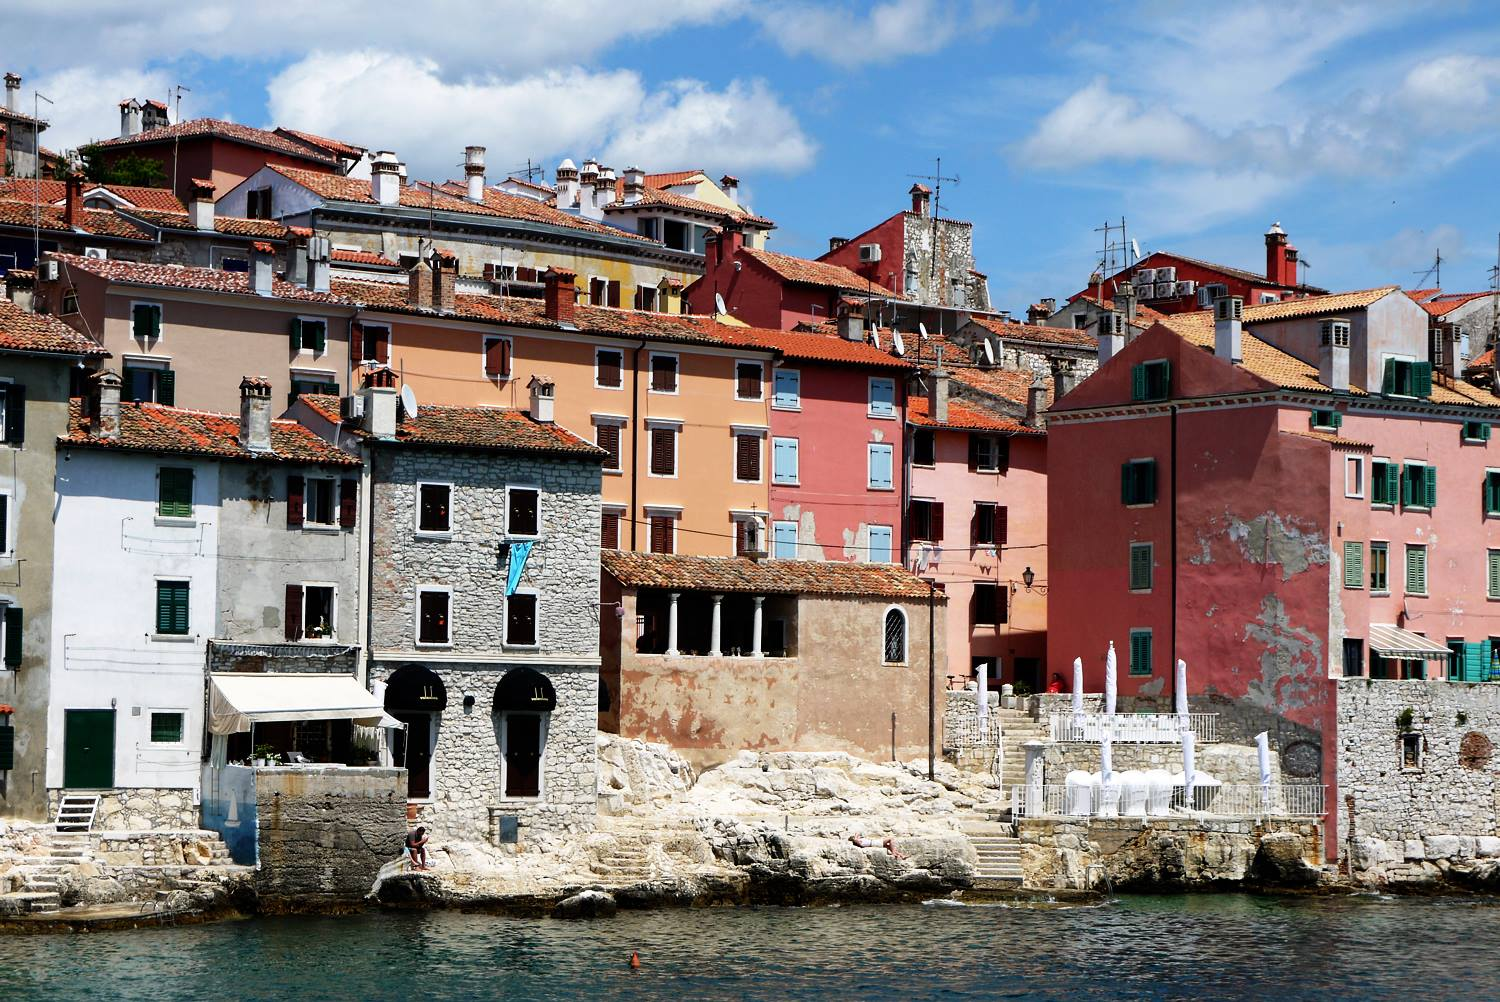 Rovinj waterside